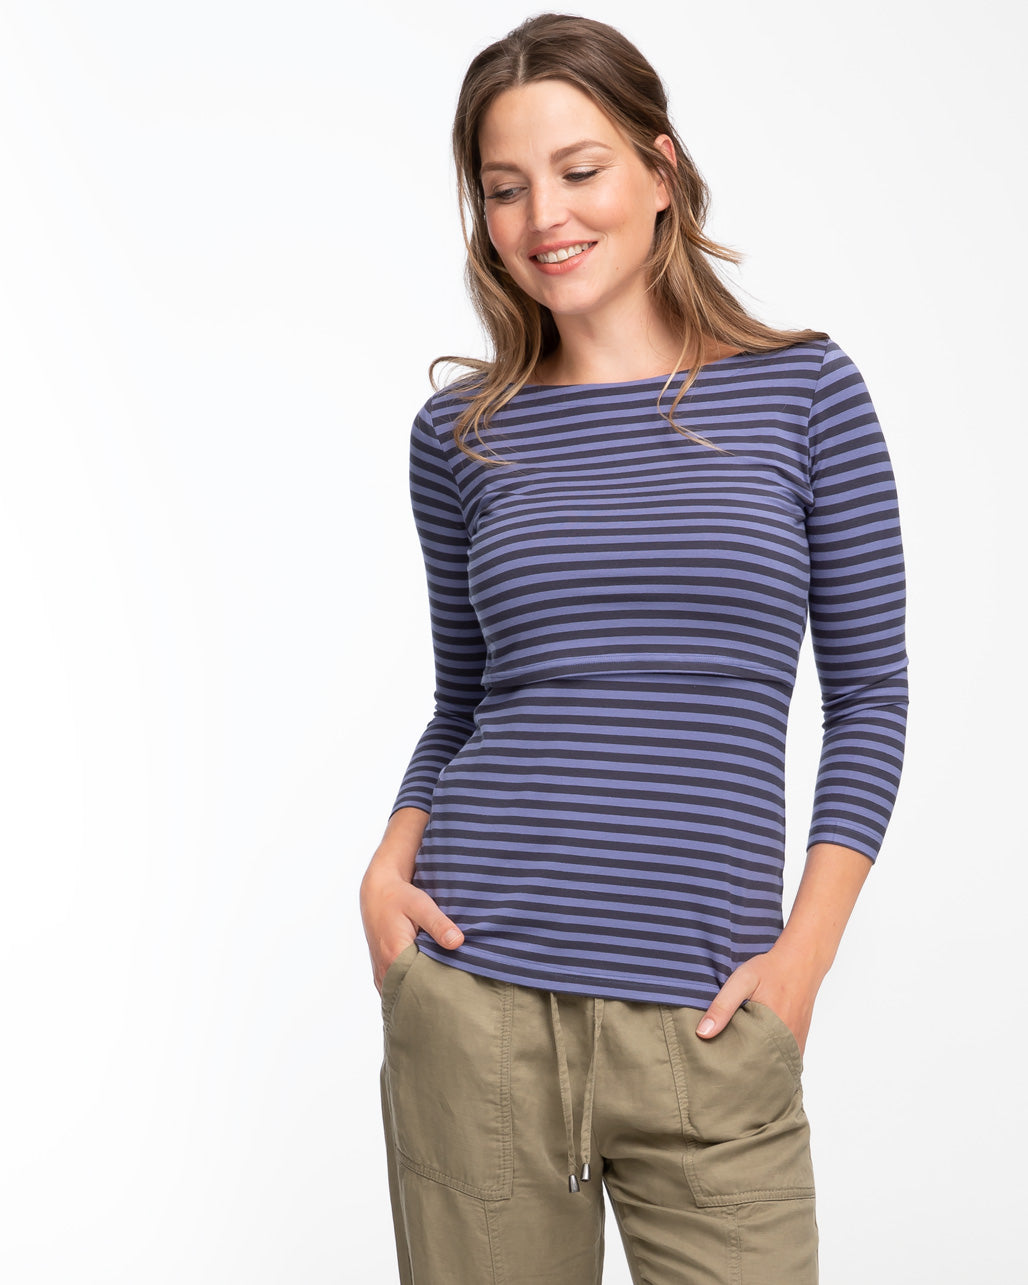 63989f8471 Blue stripe bamboo nursing top in boatneck style by Peachymama 1